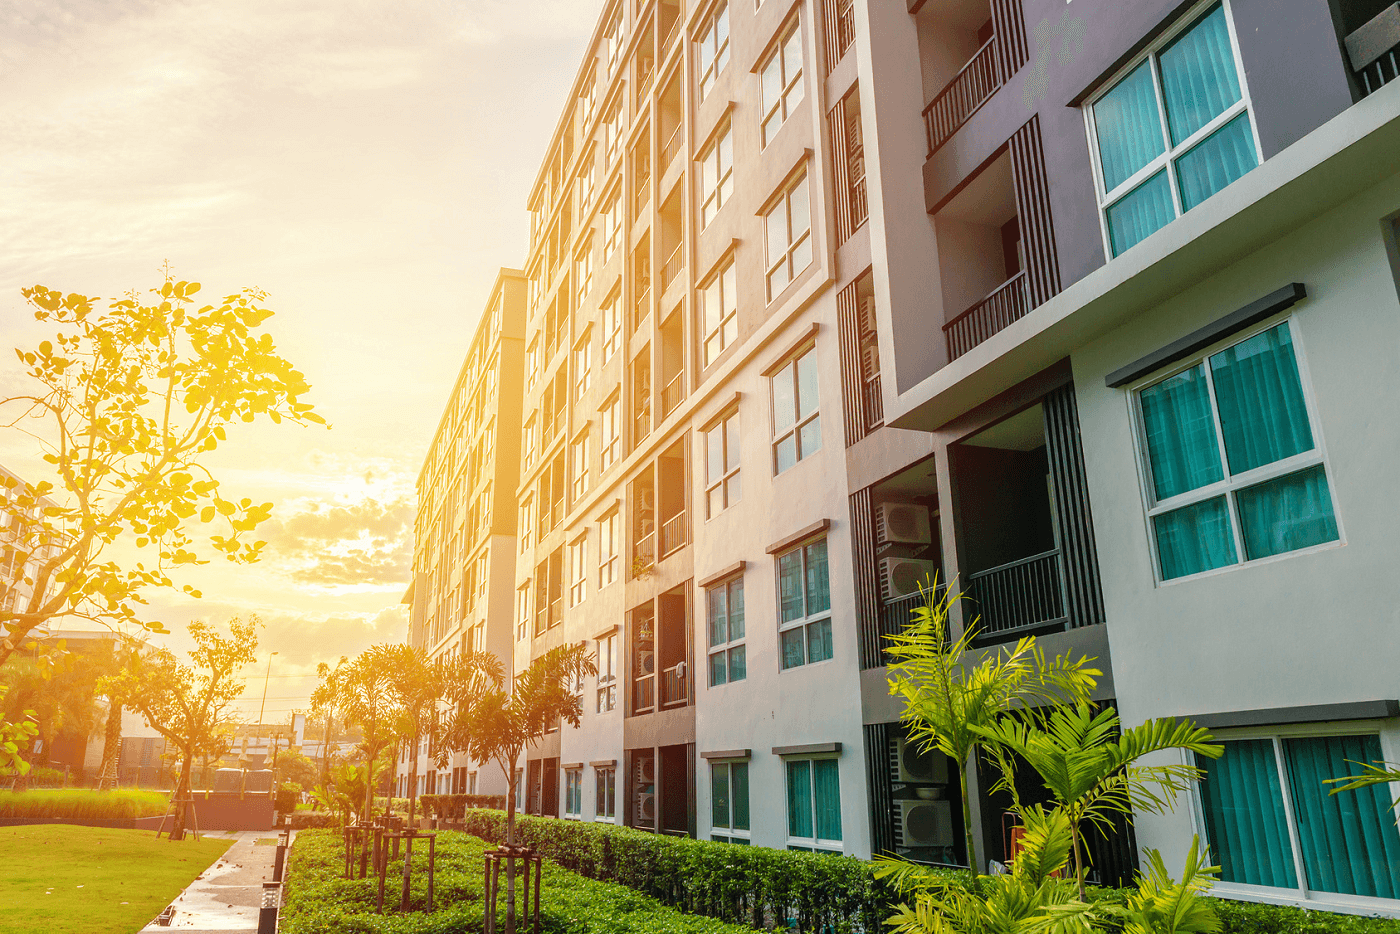 apartment-for-rent-ways-to-market-to-millennials